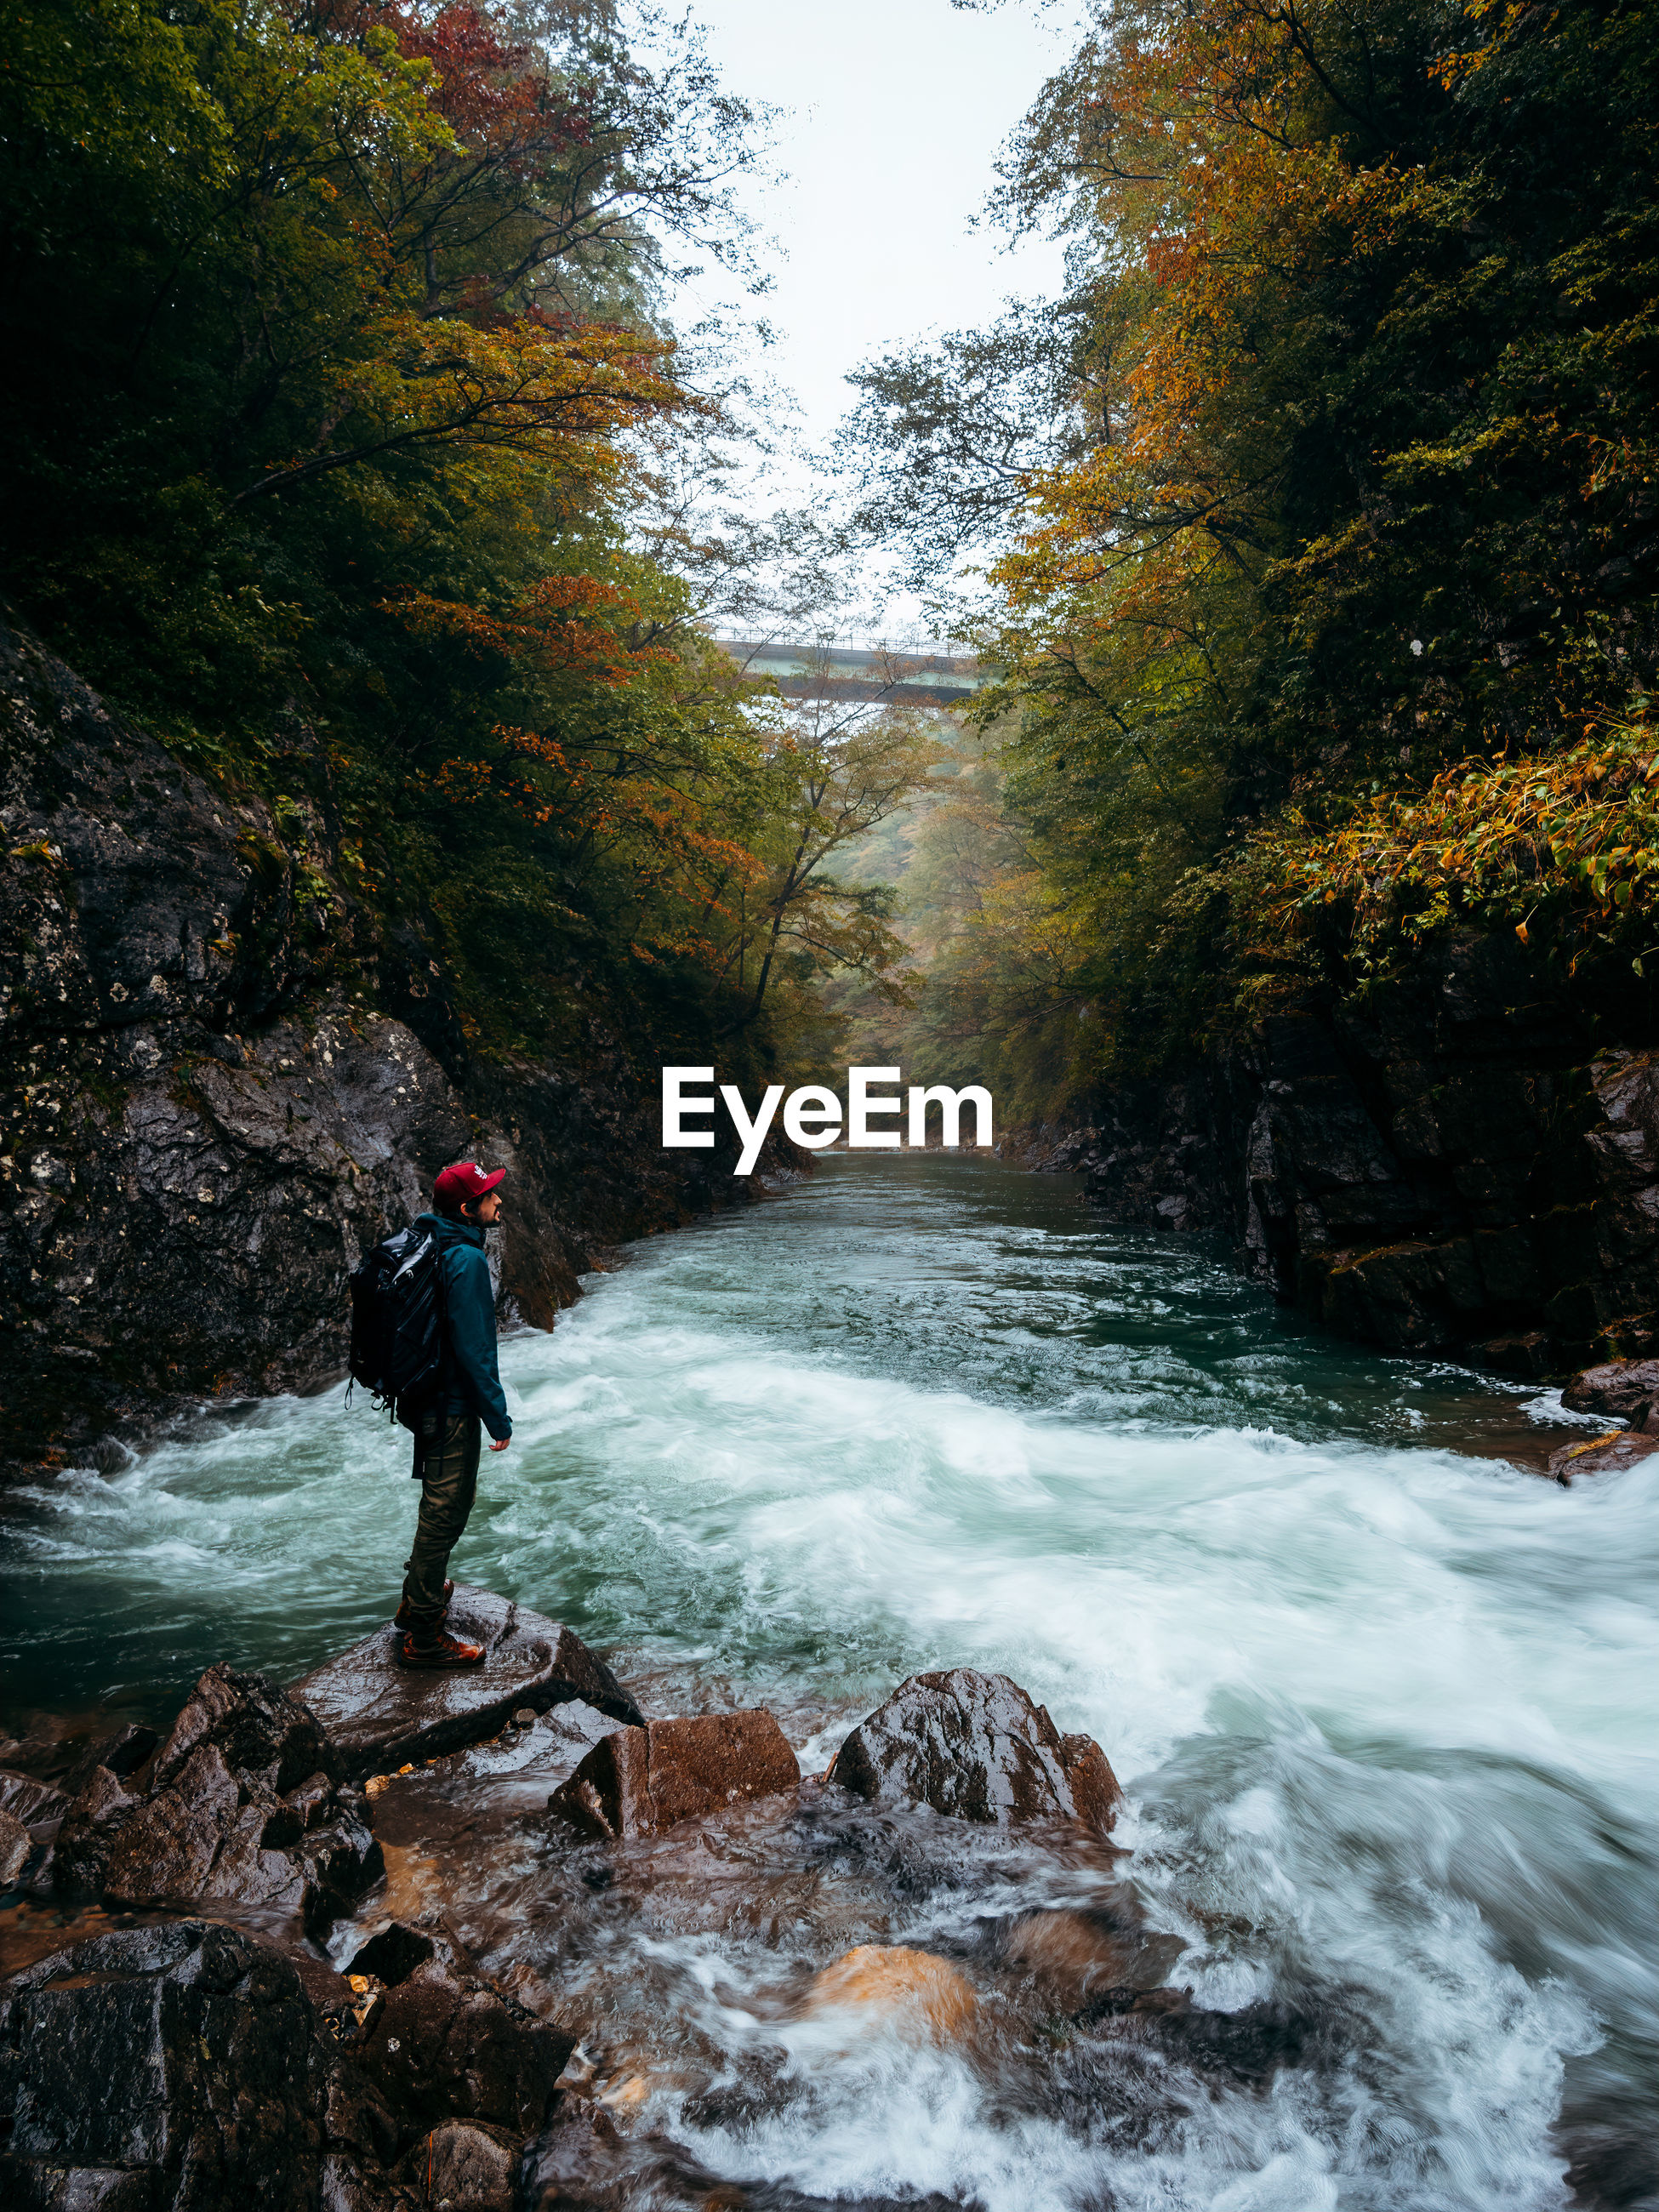 autumn, beauty in nature, tree, water, nature, river, scenics - nature, stream, forest, plant, one person, motion, land, leisure activity, wilderness, rock, rapid, sports, adventure, flowing water, activity, leaf, full length, waterfall, adult, hiking, environment, creek, men, outdoors, non-urban scene, day, vacation, lifestyles, trip, travel, water feature, holiday, tranquil scene, backpack, travel destinations, exploration, person, flowing, landscape, tranquility, standing, water sports, body of water, idyllic, recreation, long exposure, young adult